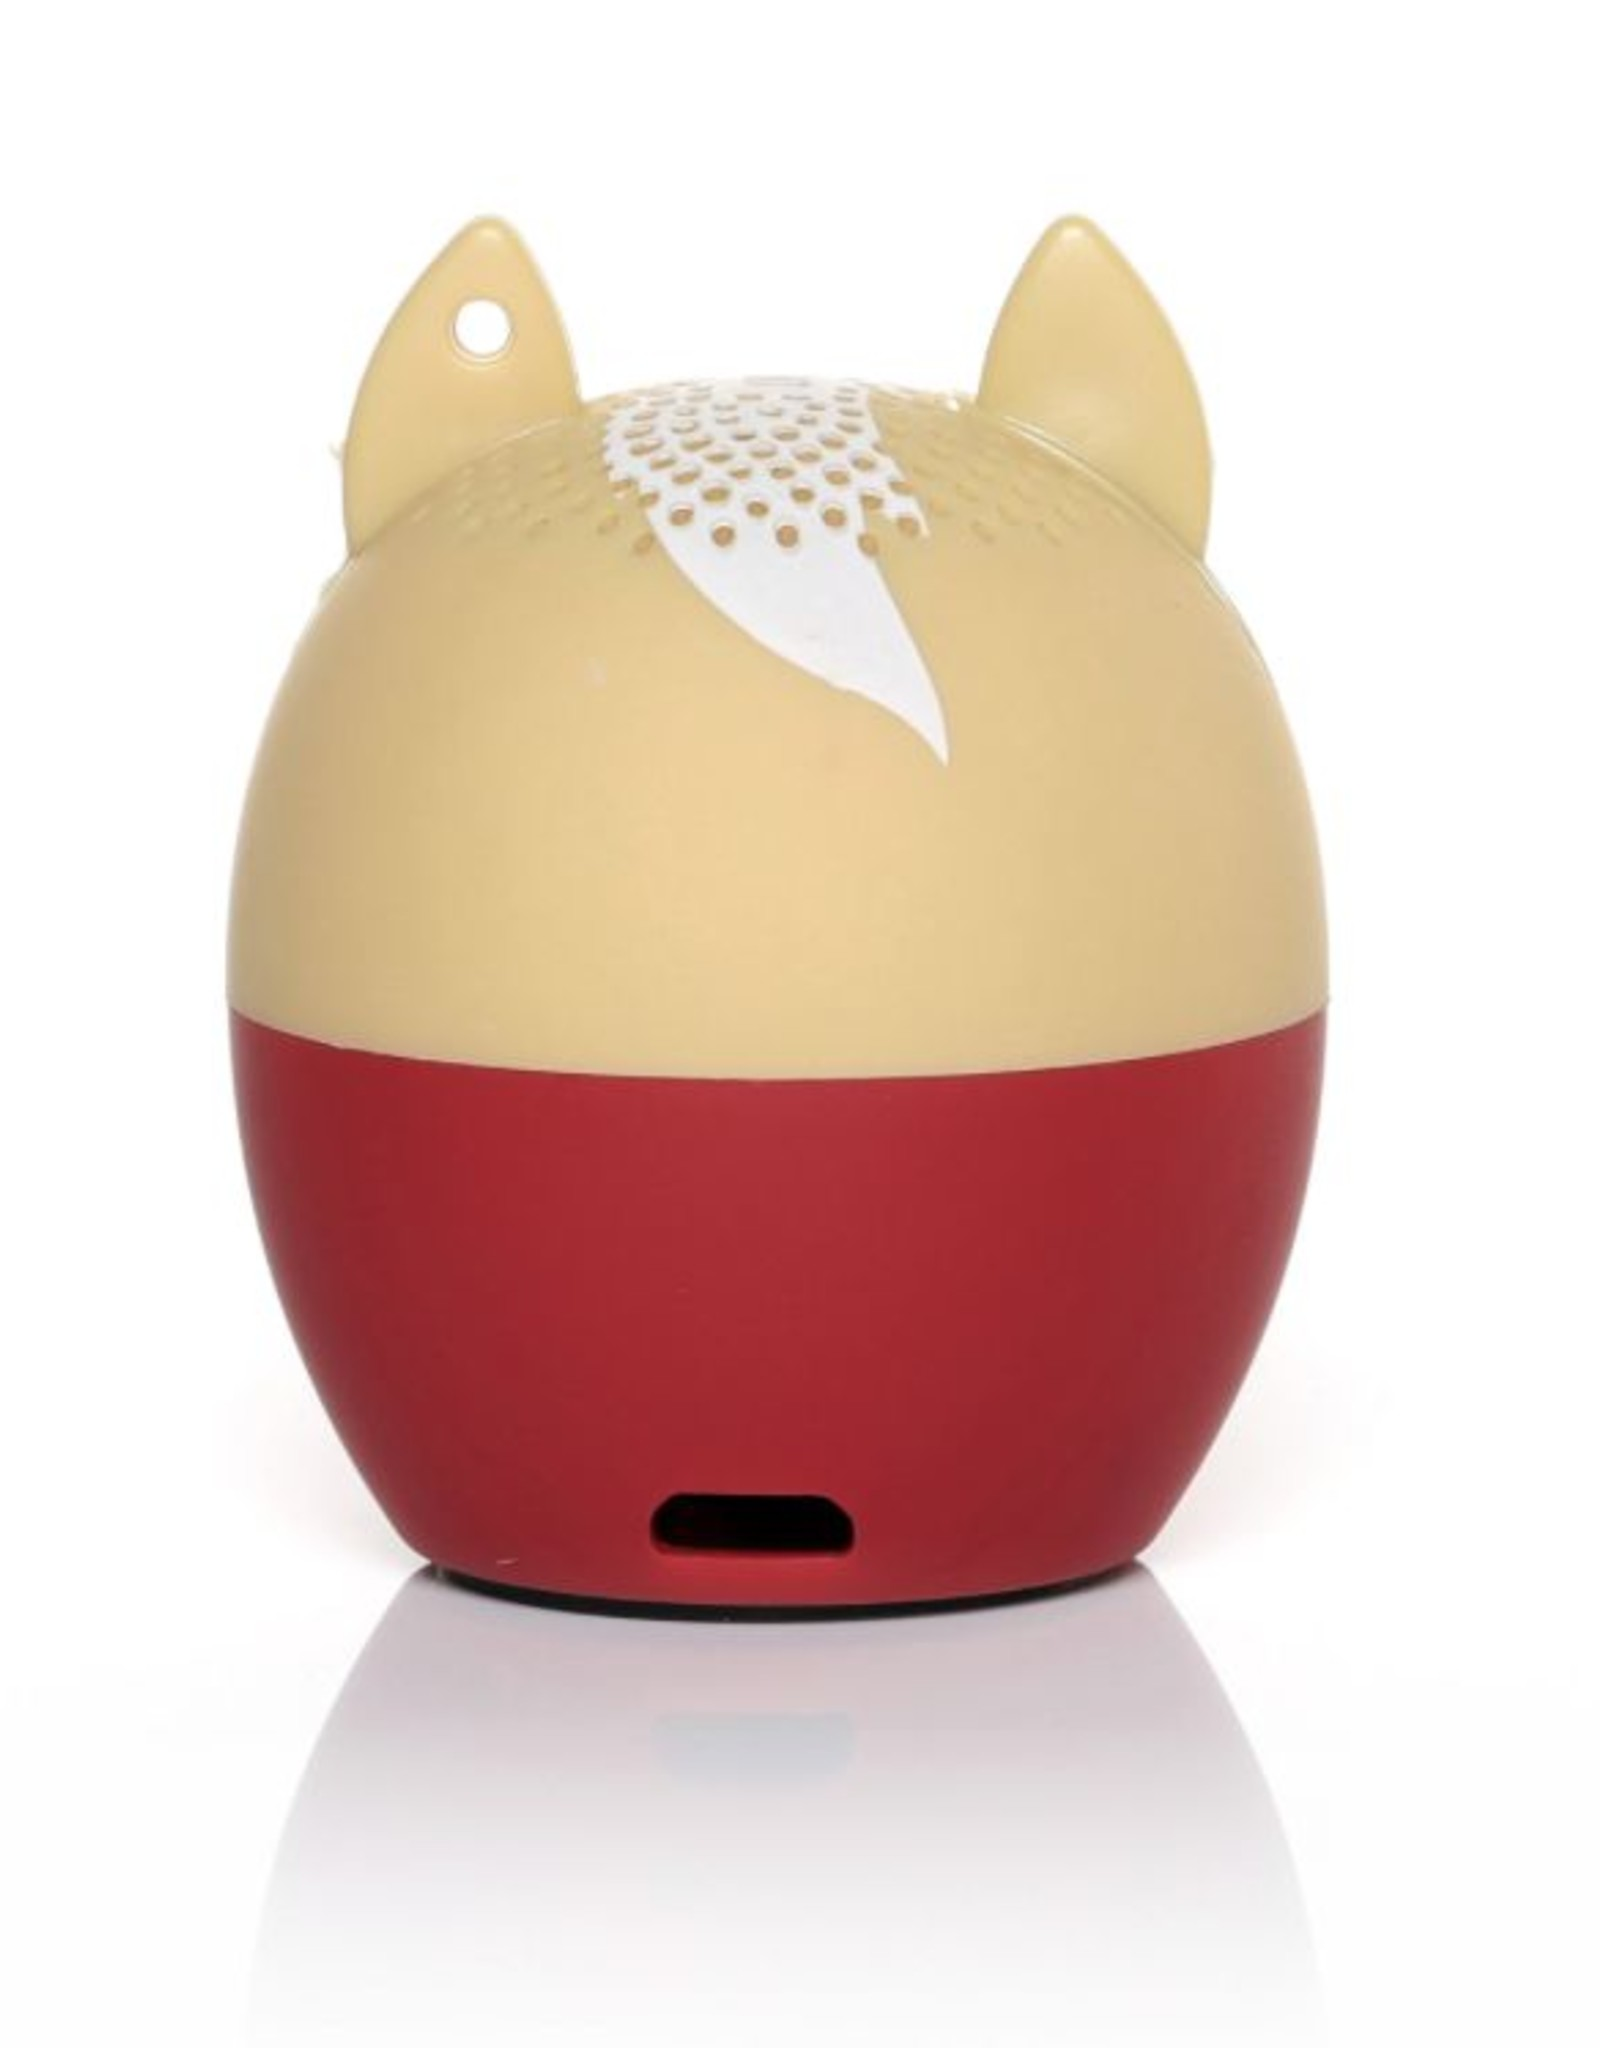 Bitty Boomers Bitty Boomer OU Wireless Bluetooth Speaker